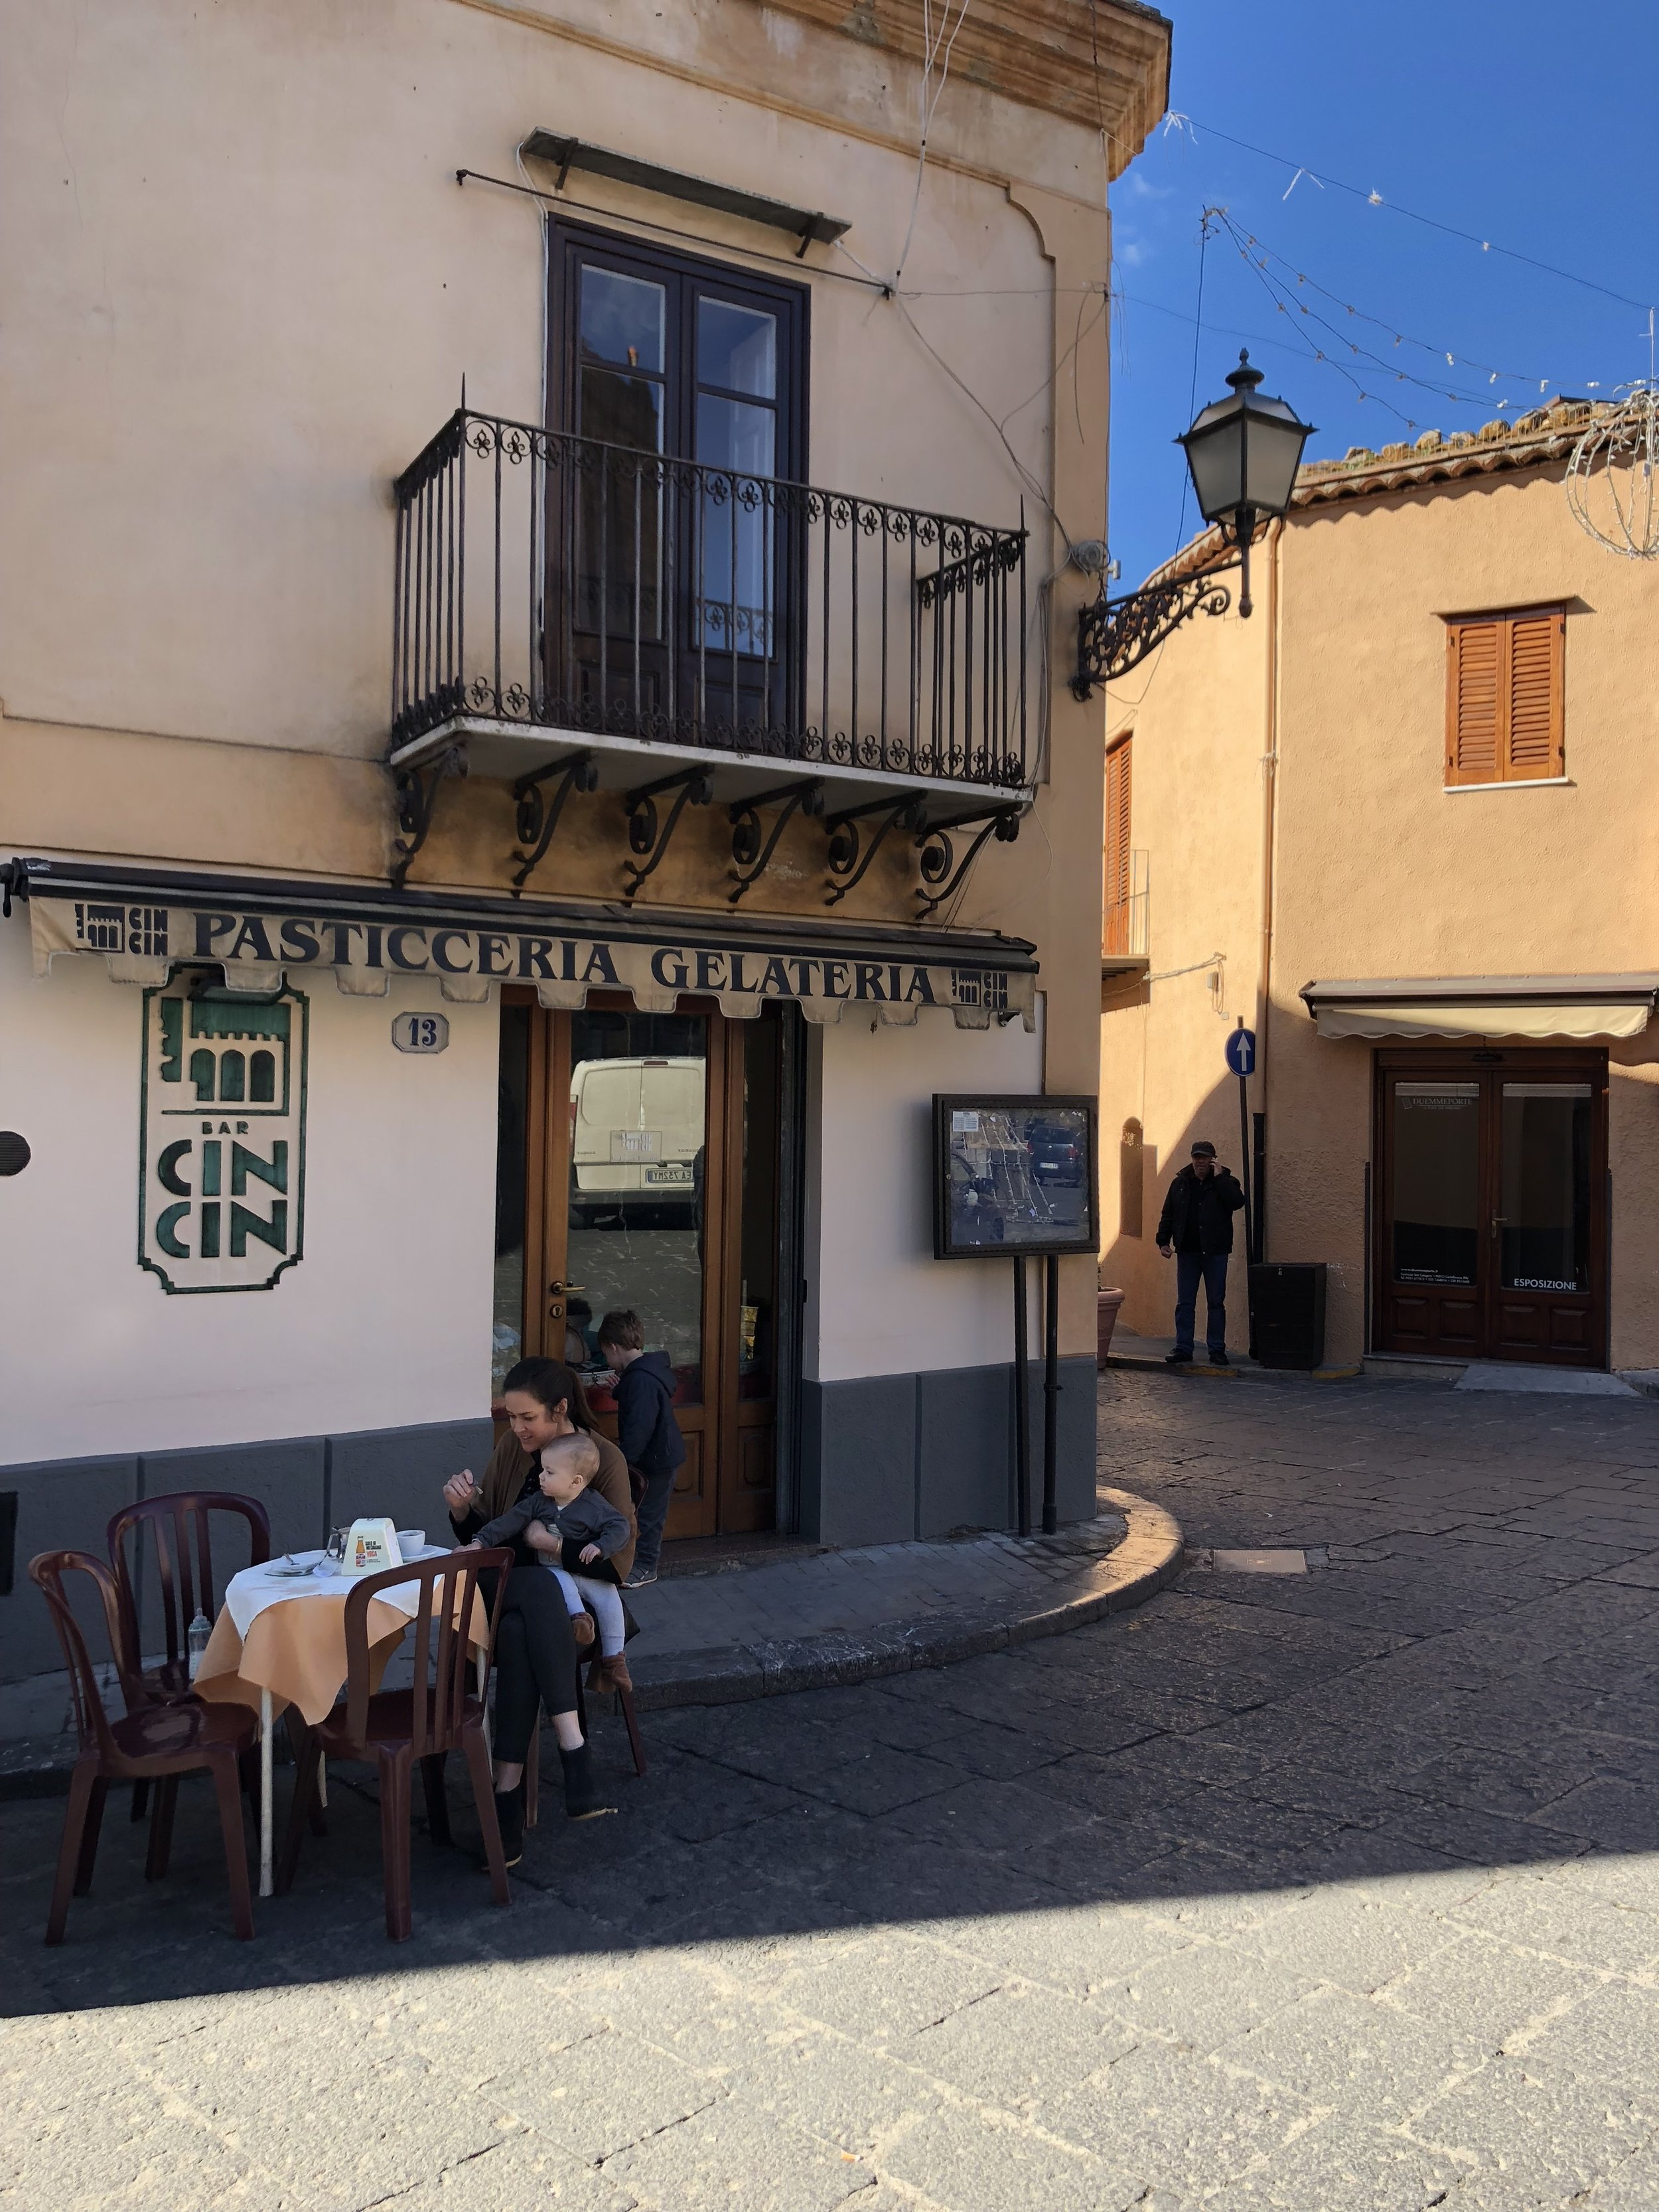 Coffee stop in Castelbuono.